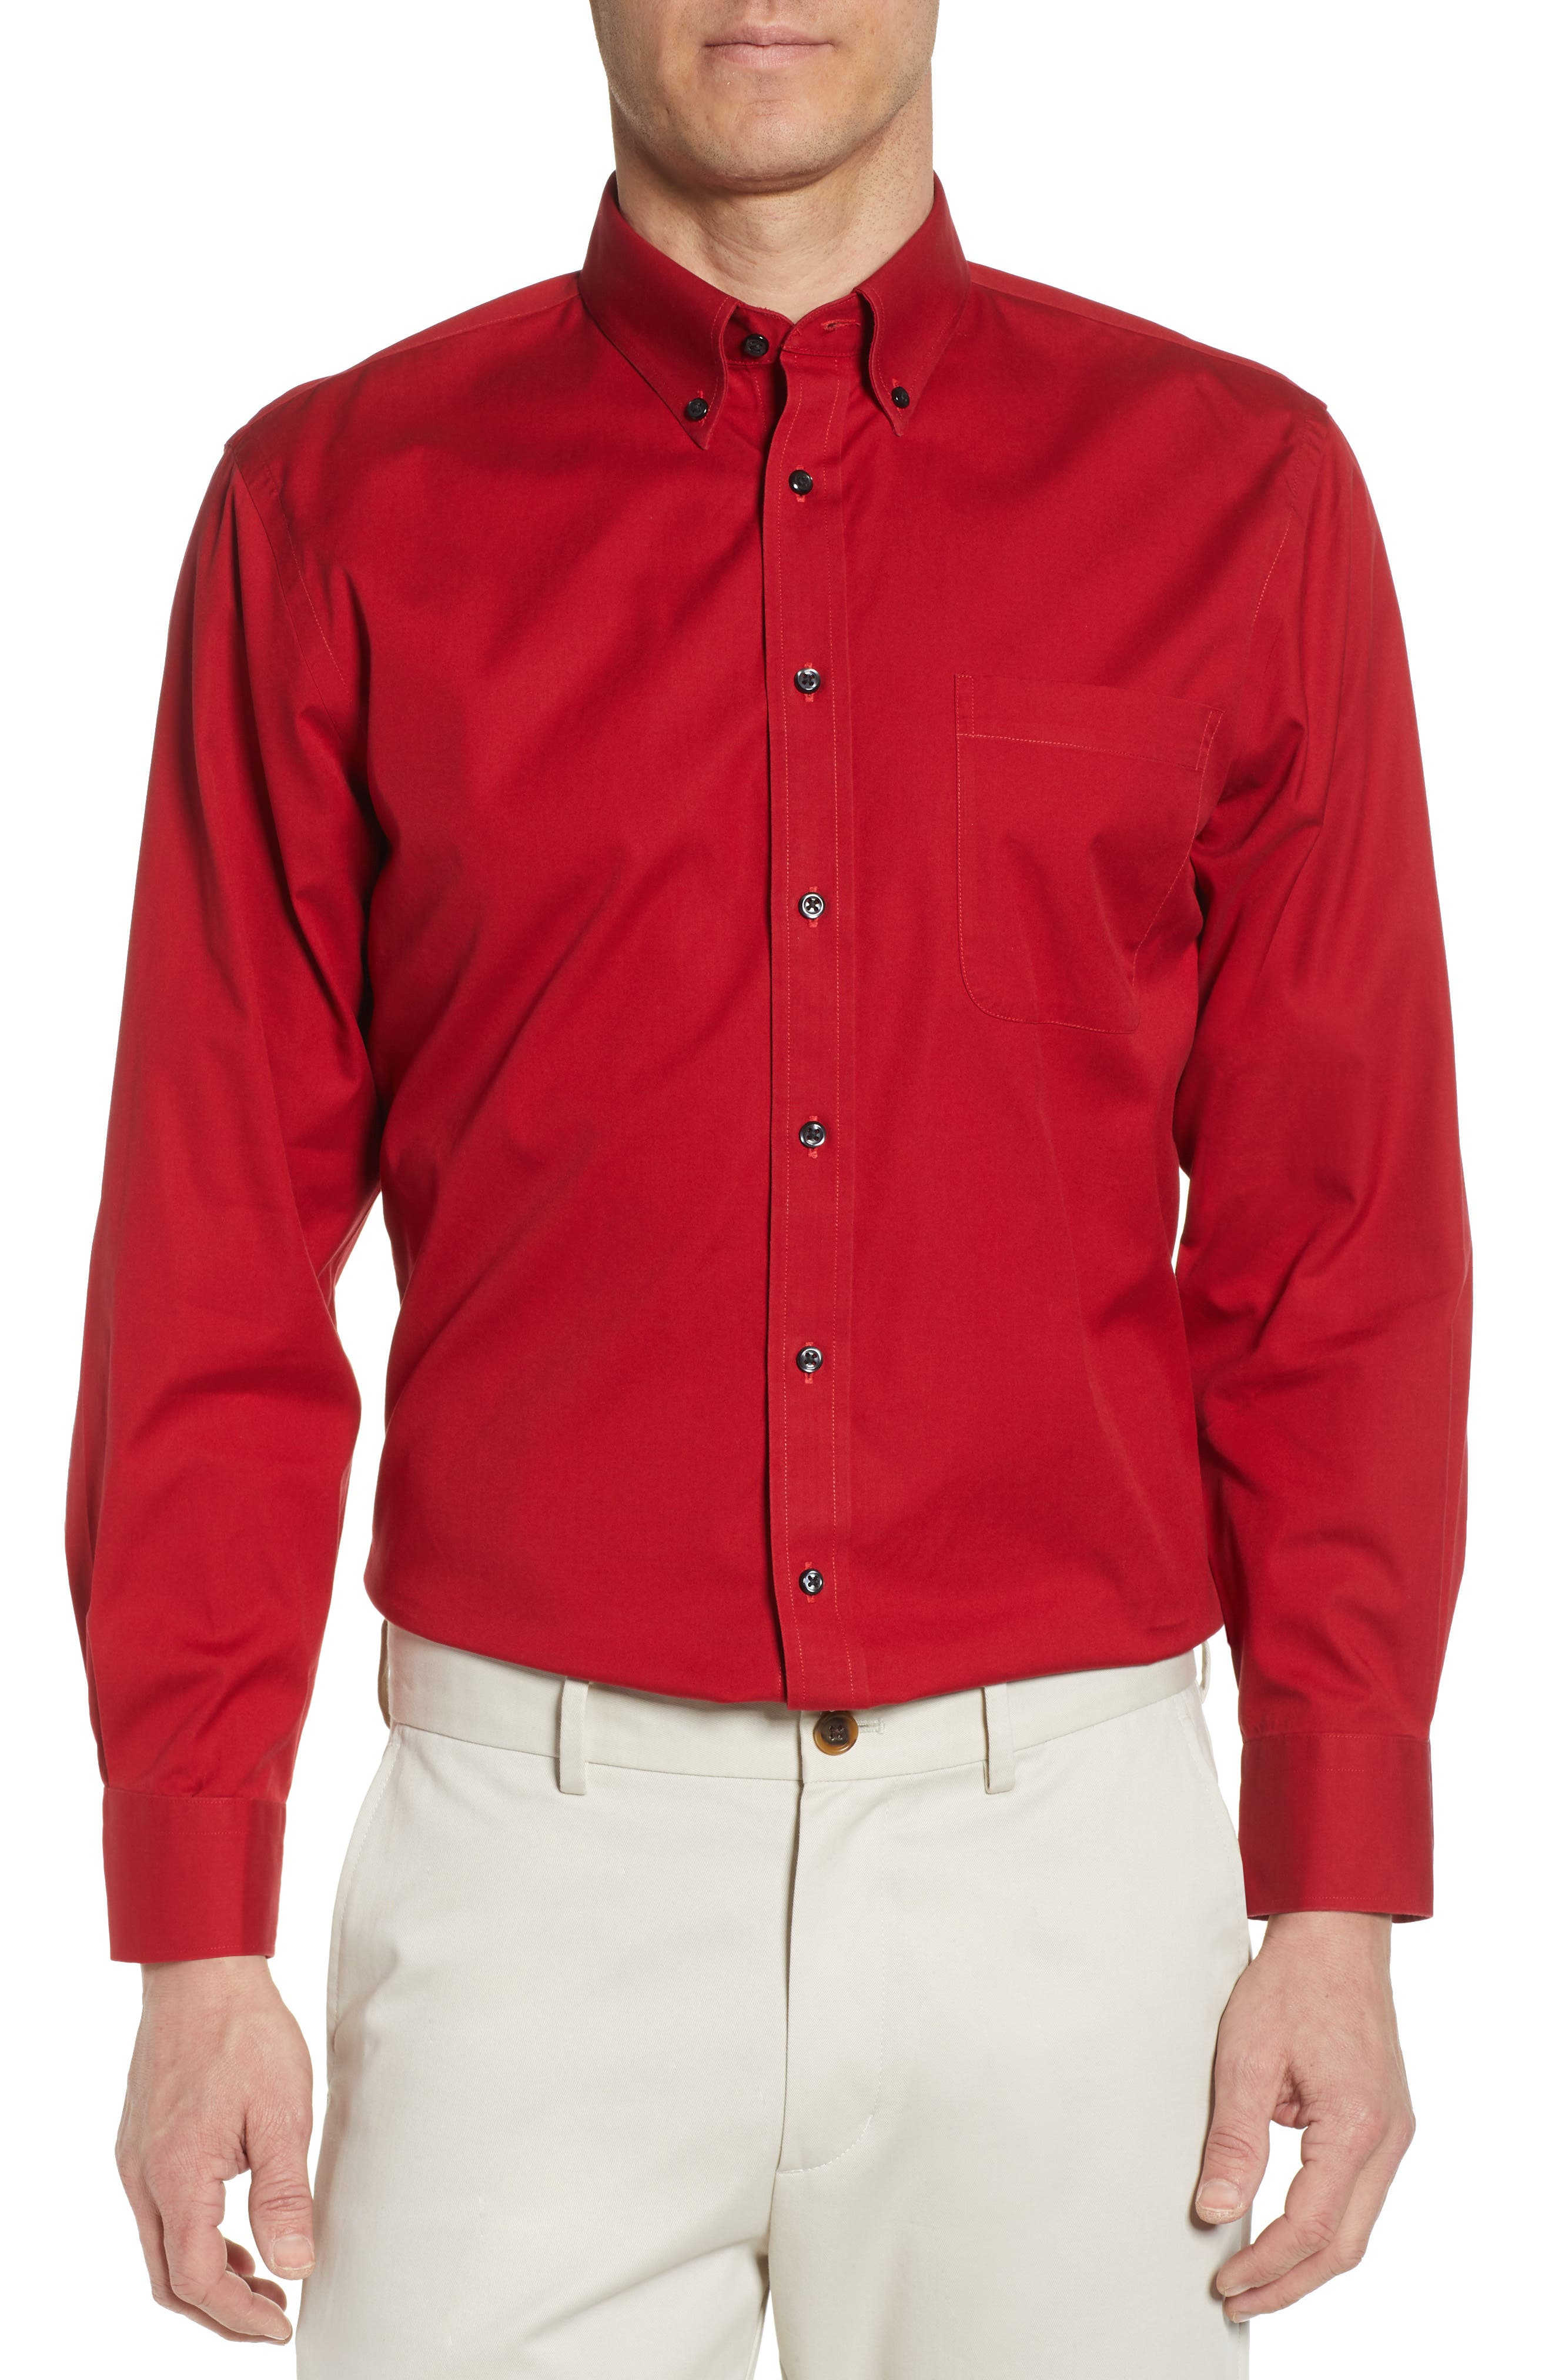 Nordstrom Shop Smartcare(TM) Traditional Fit Pinpoint Dress Shirt, 5.5 34/35 - Red